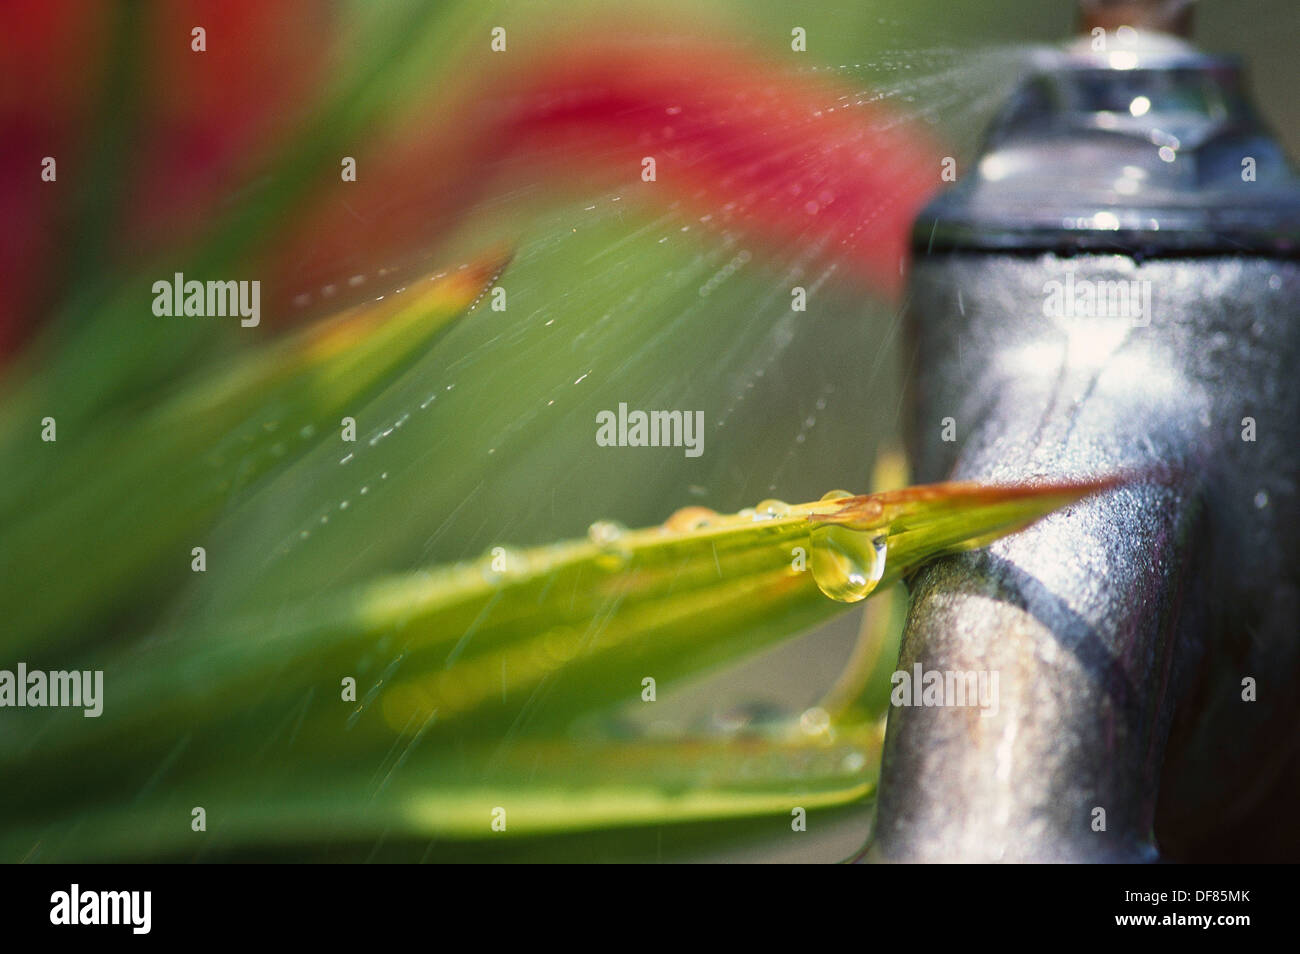 Leaking Outdoor Tap Stock Photos & Leaking Outdoor Tap Stock Images ...